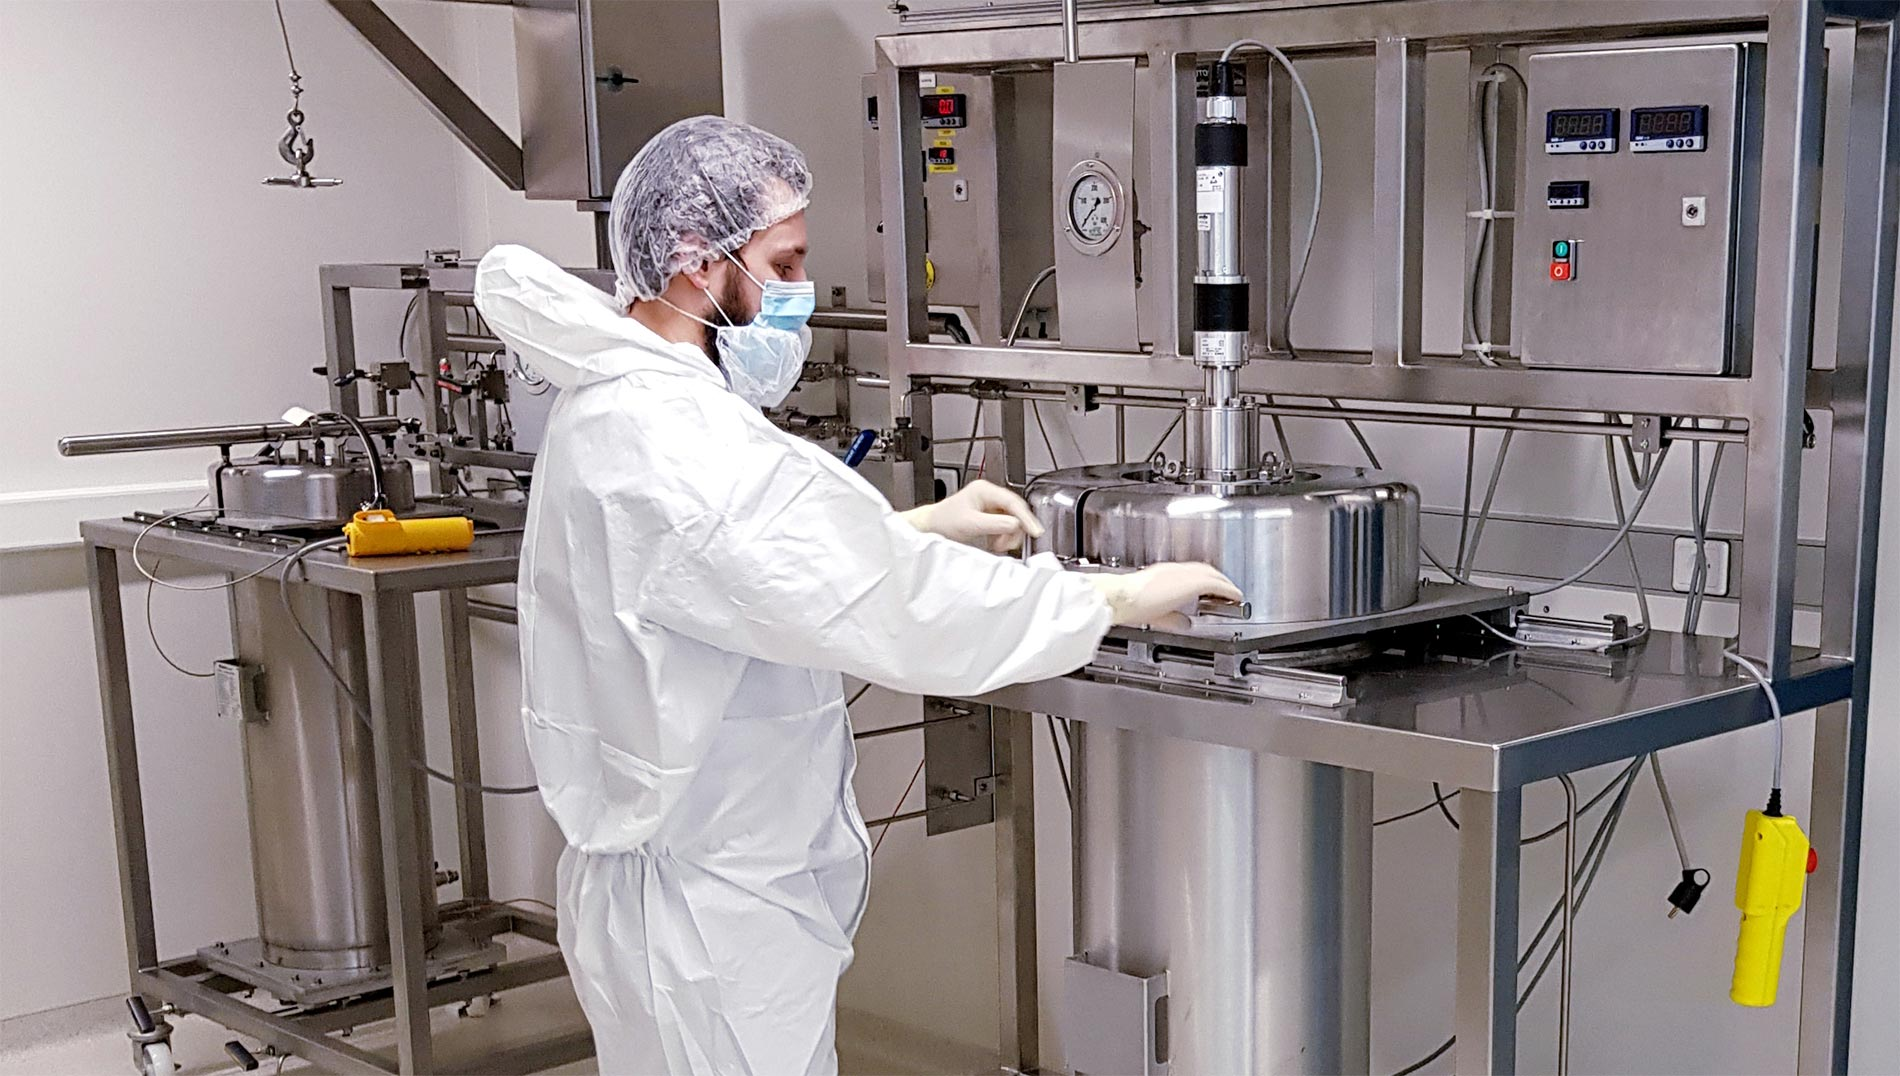 Supercritical CO2 extractor laboratory clean room - sfe process